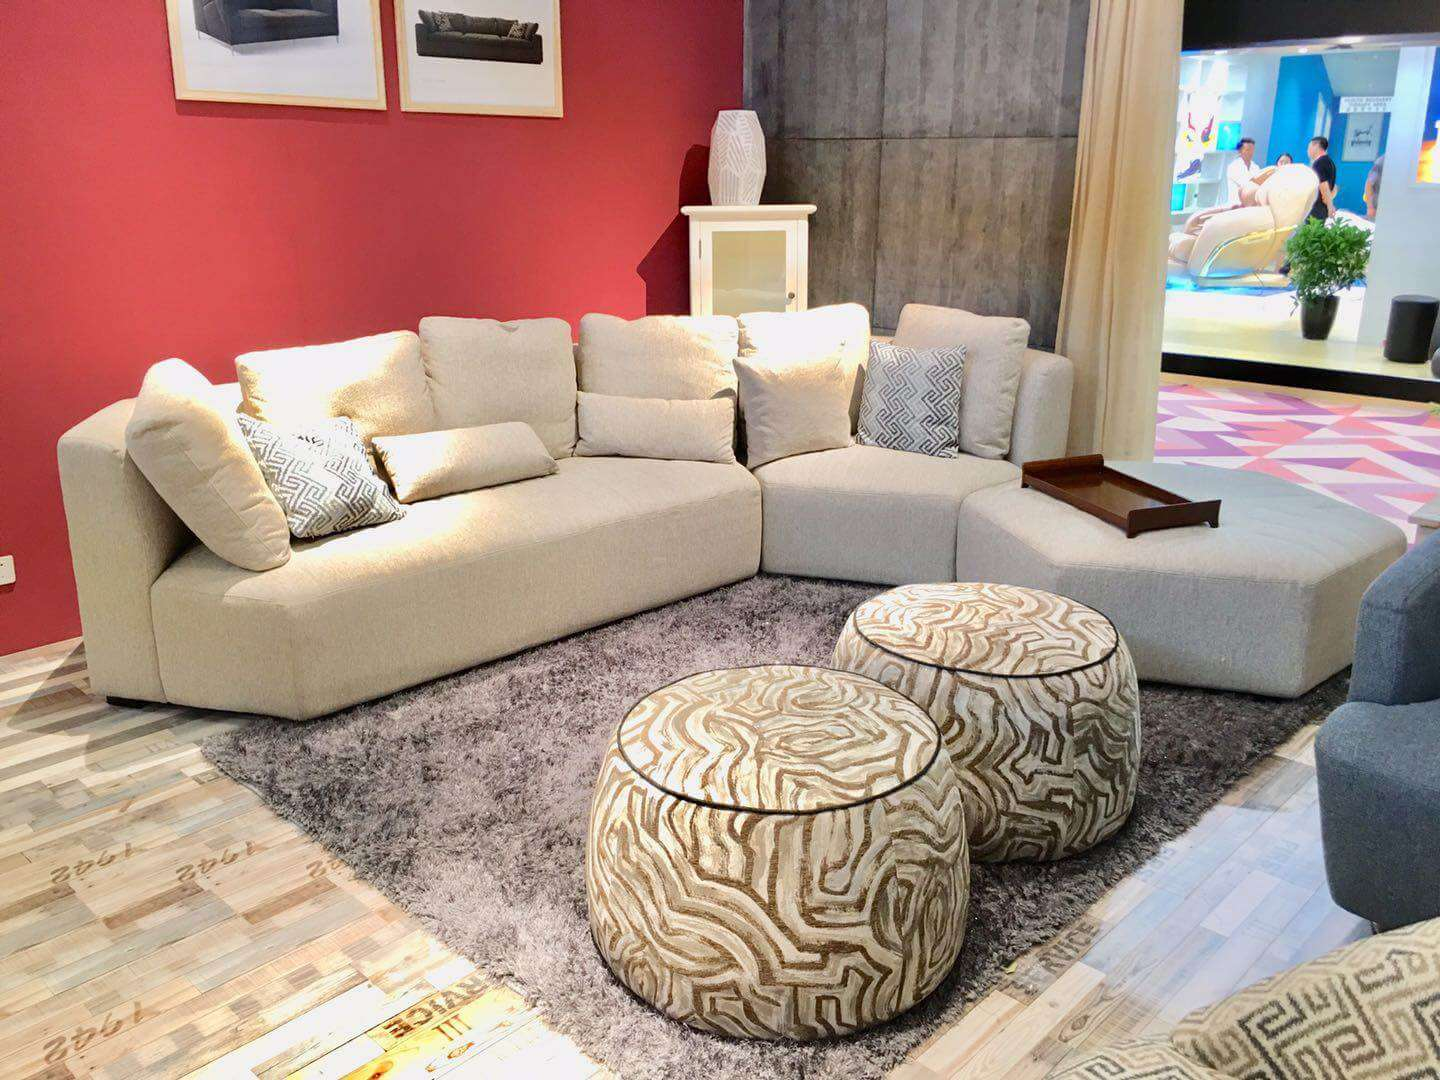 Trends Sofa Sofa Design 2018 Top Types Styles And Stylish Colors Of